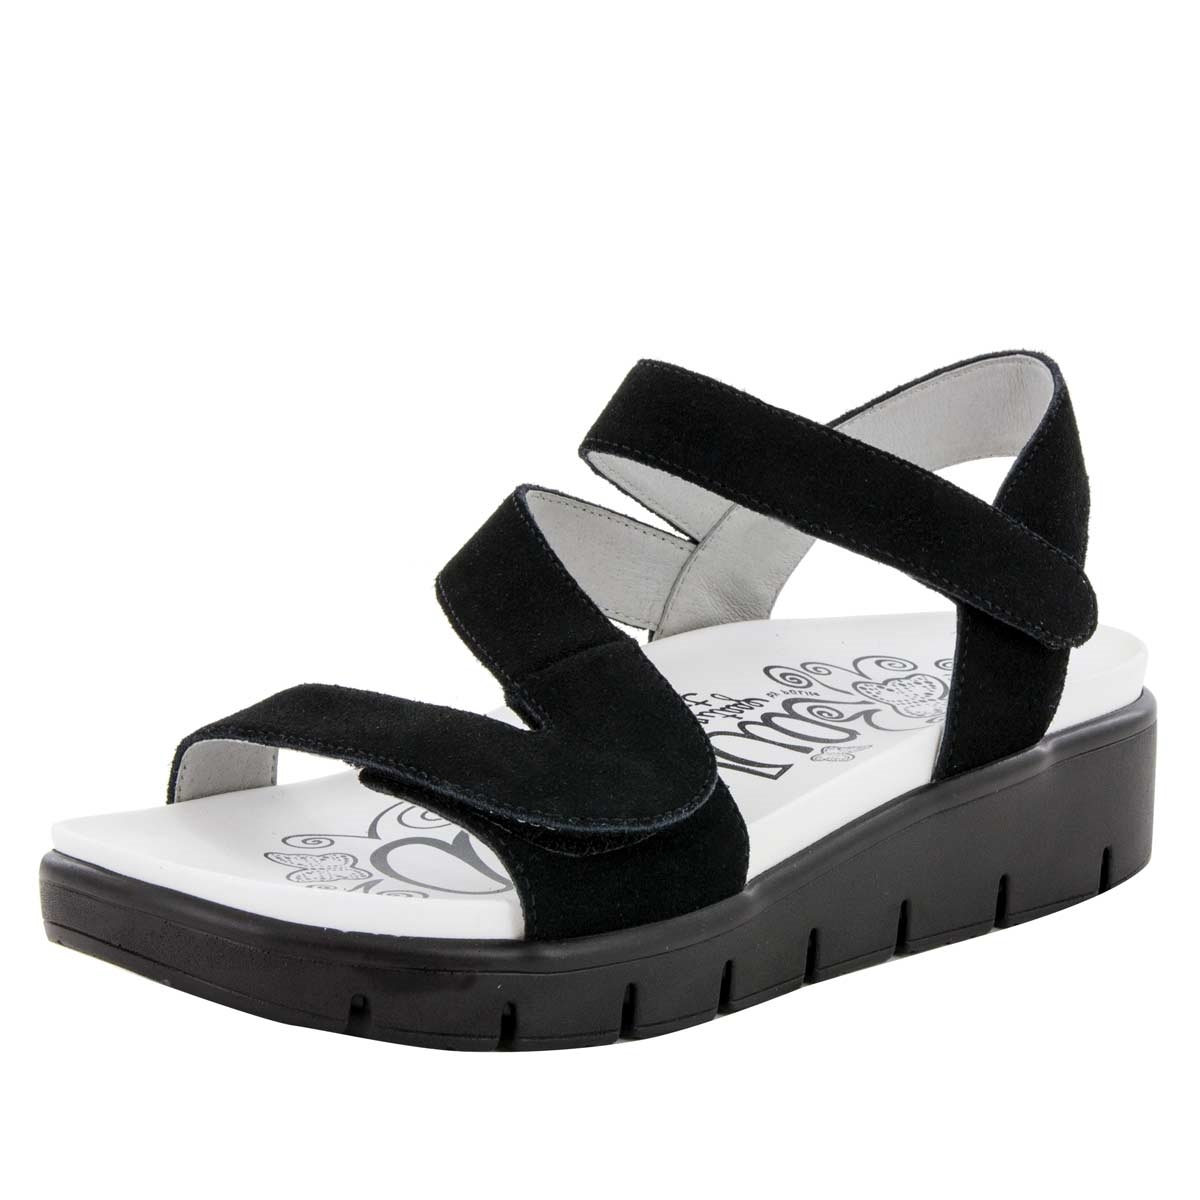 15821ea2027be2 Anah Black Sandal - Alegria Shoes